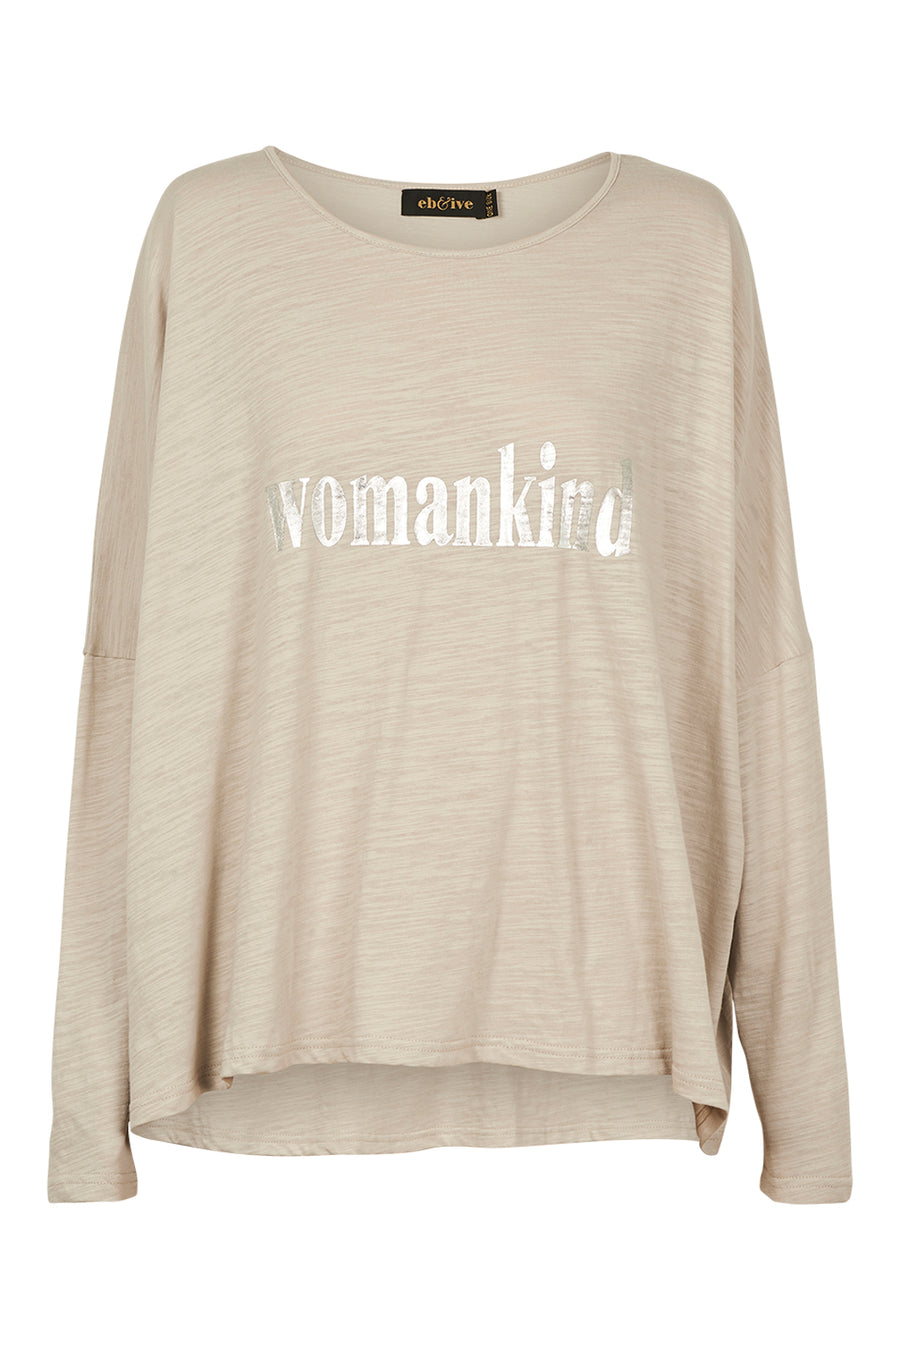 Womankind T-Shirt - Grey - Shop Online At Mookah - mookah.com.au